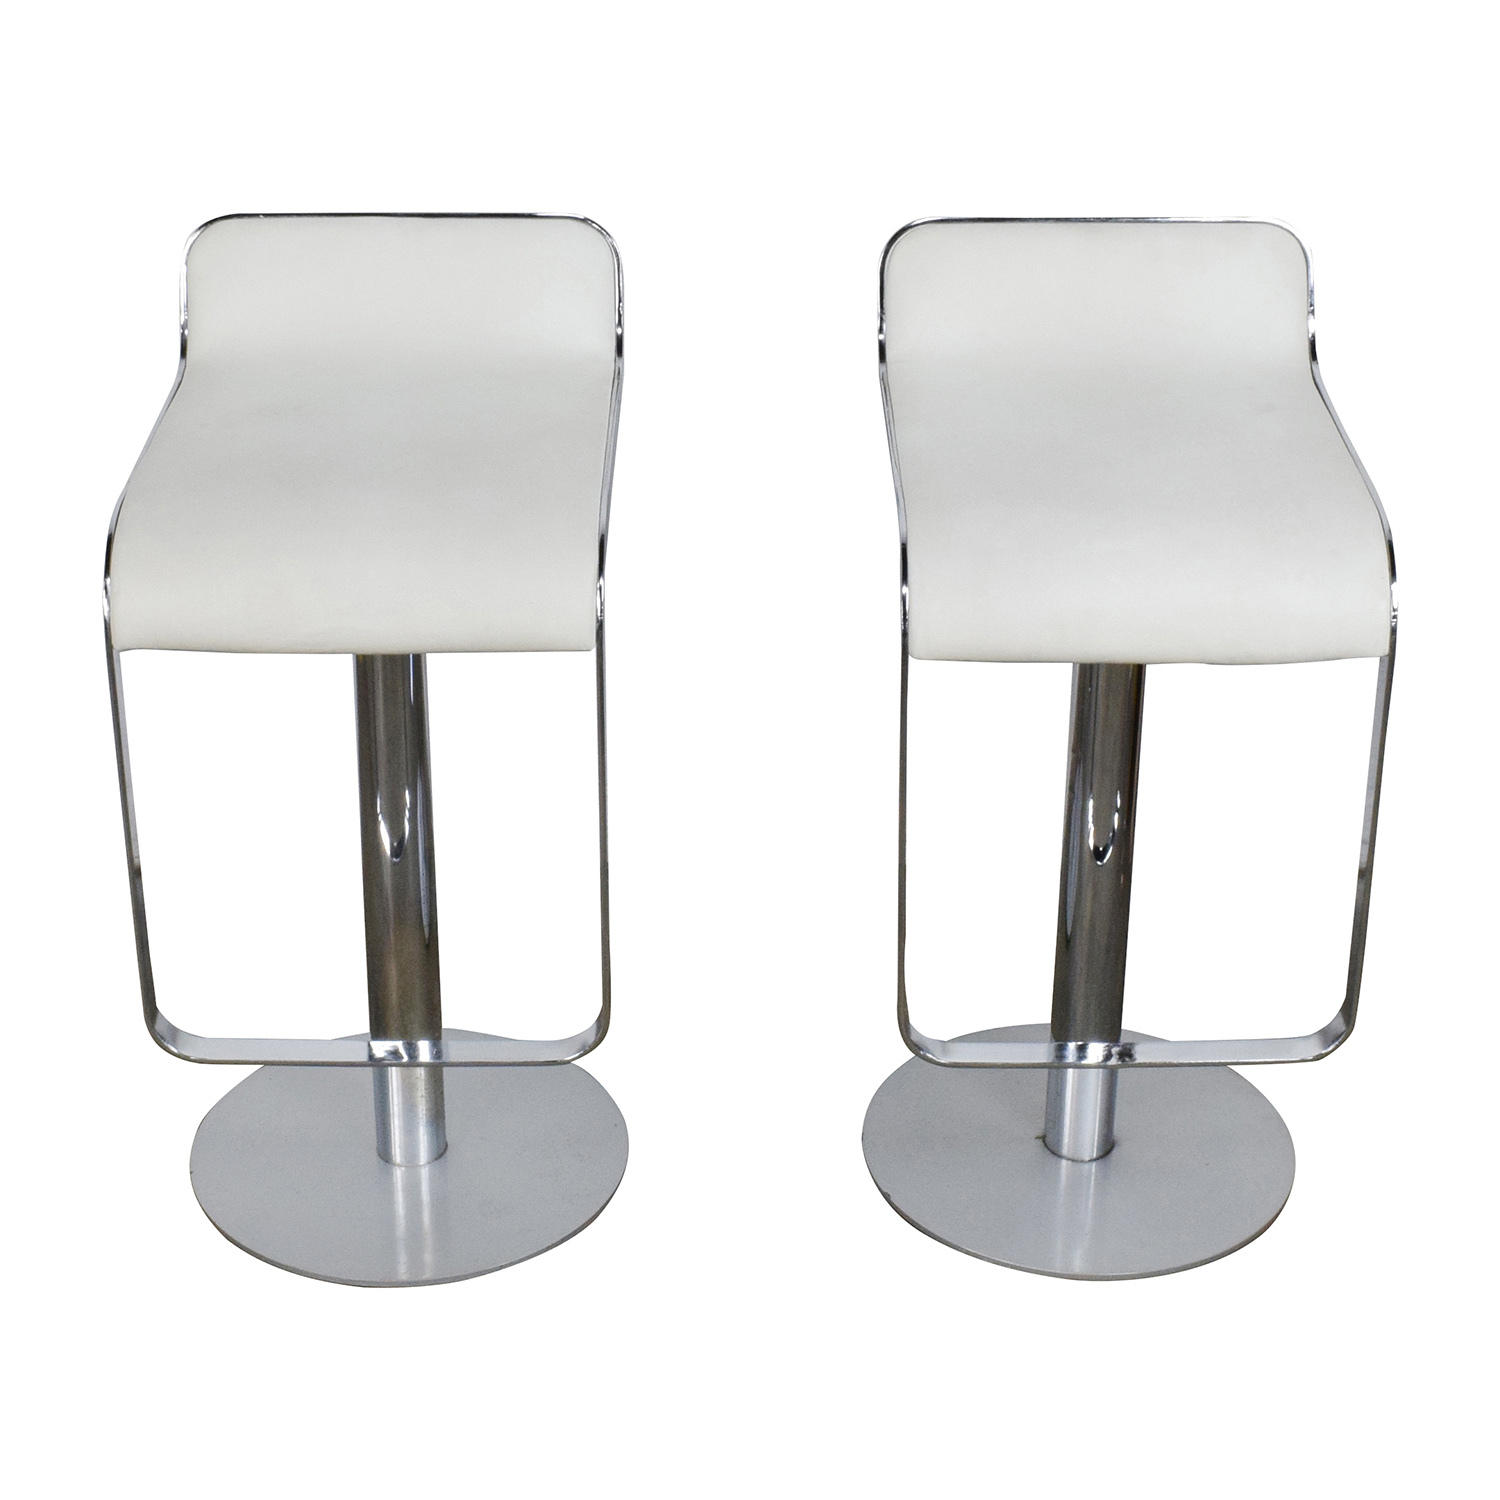 84% off - all modern all modern white leather bar stools / chairs